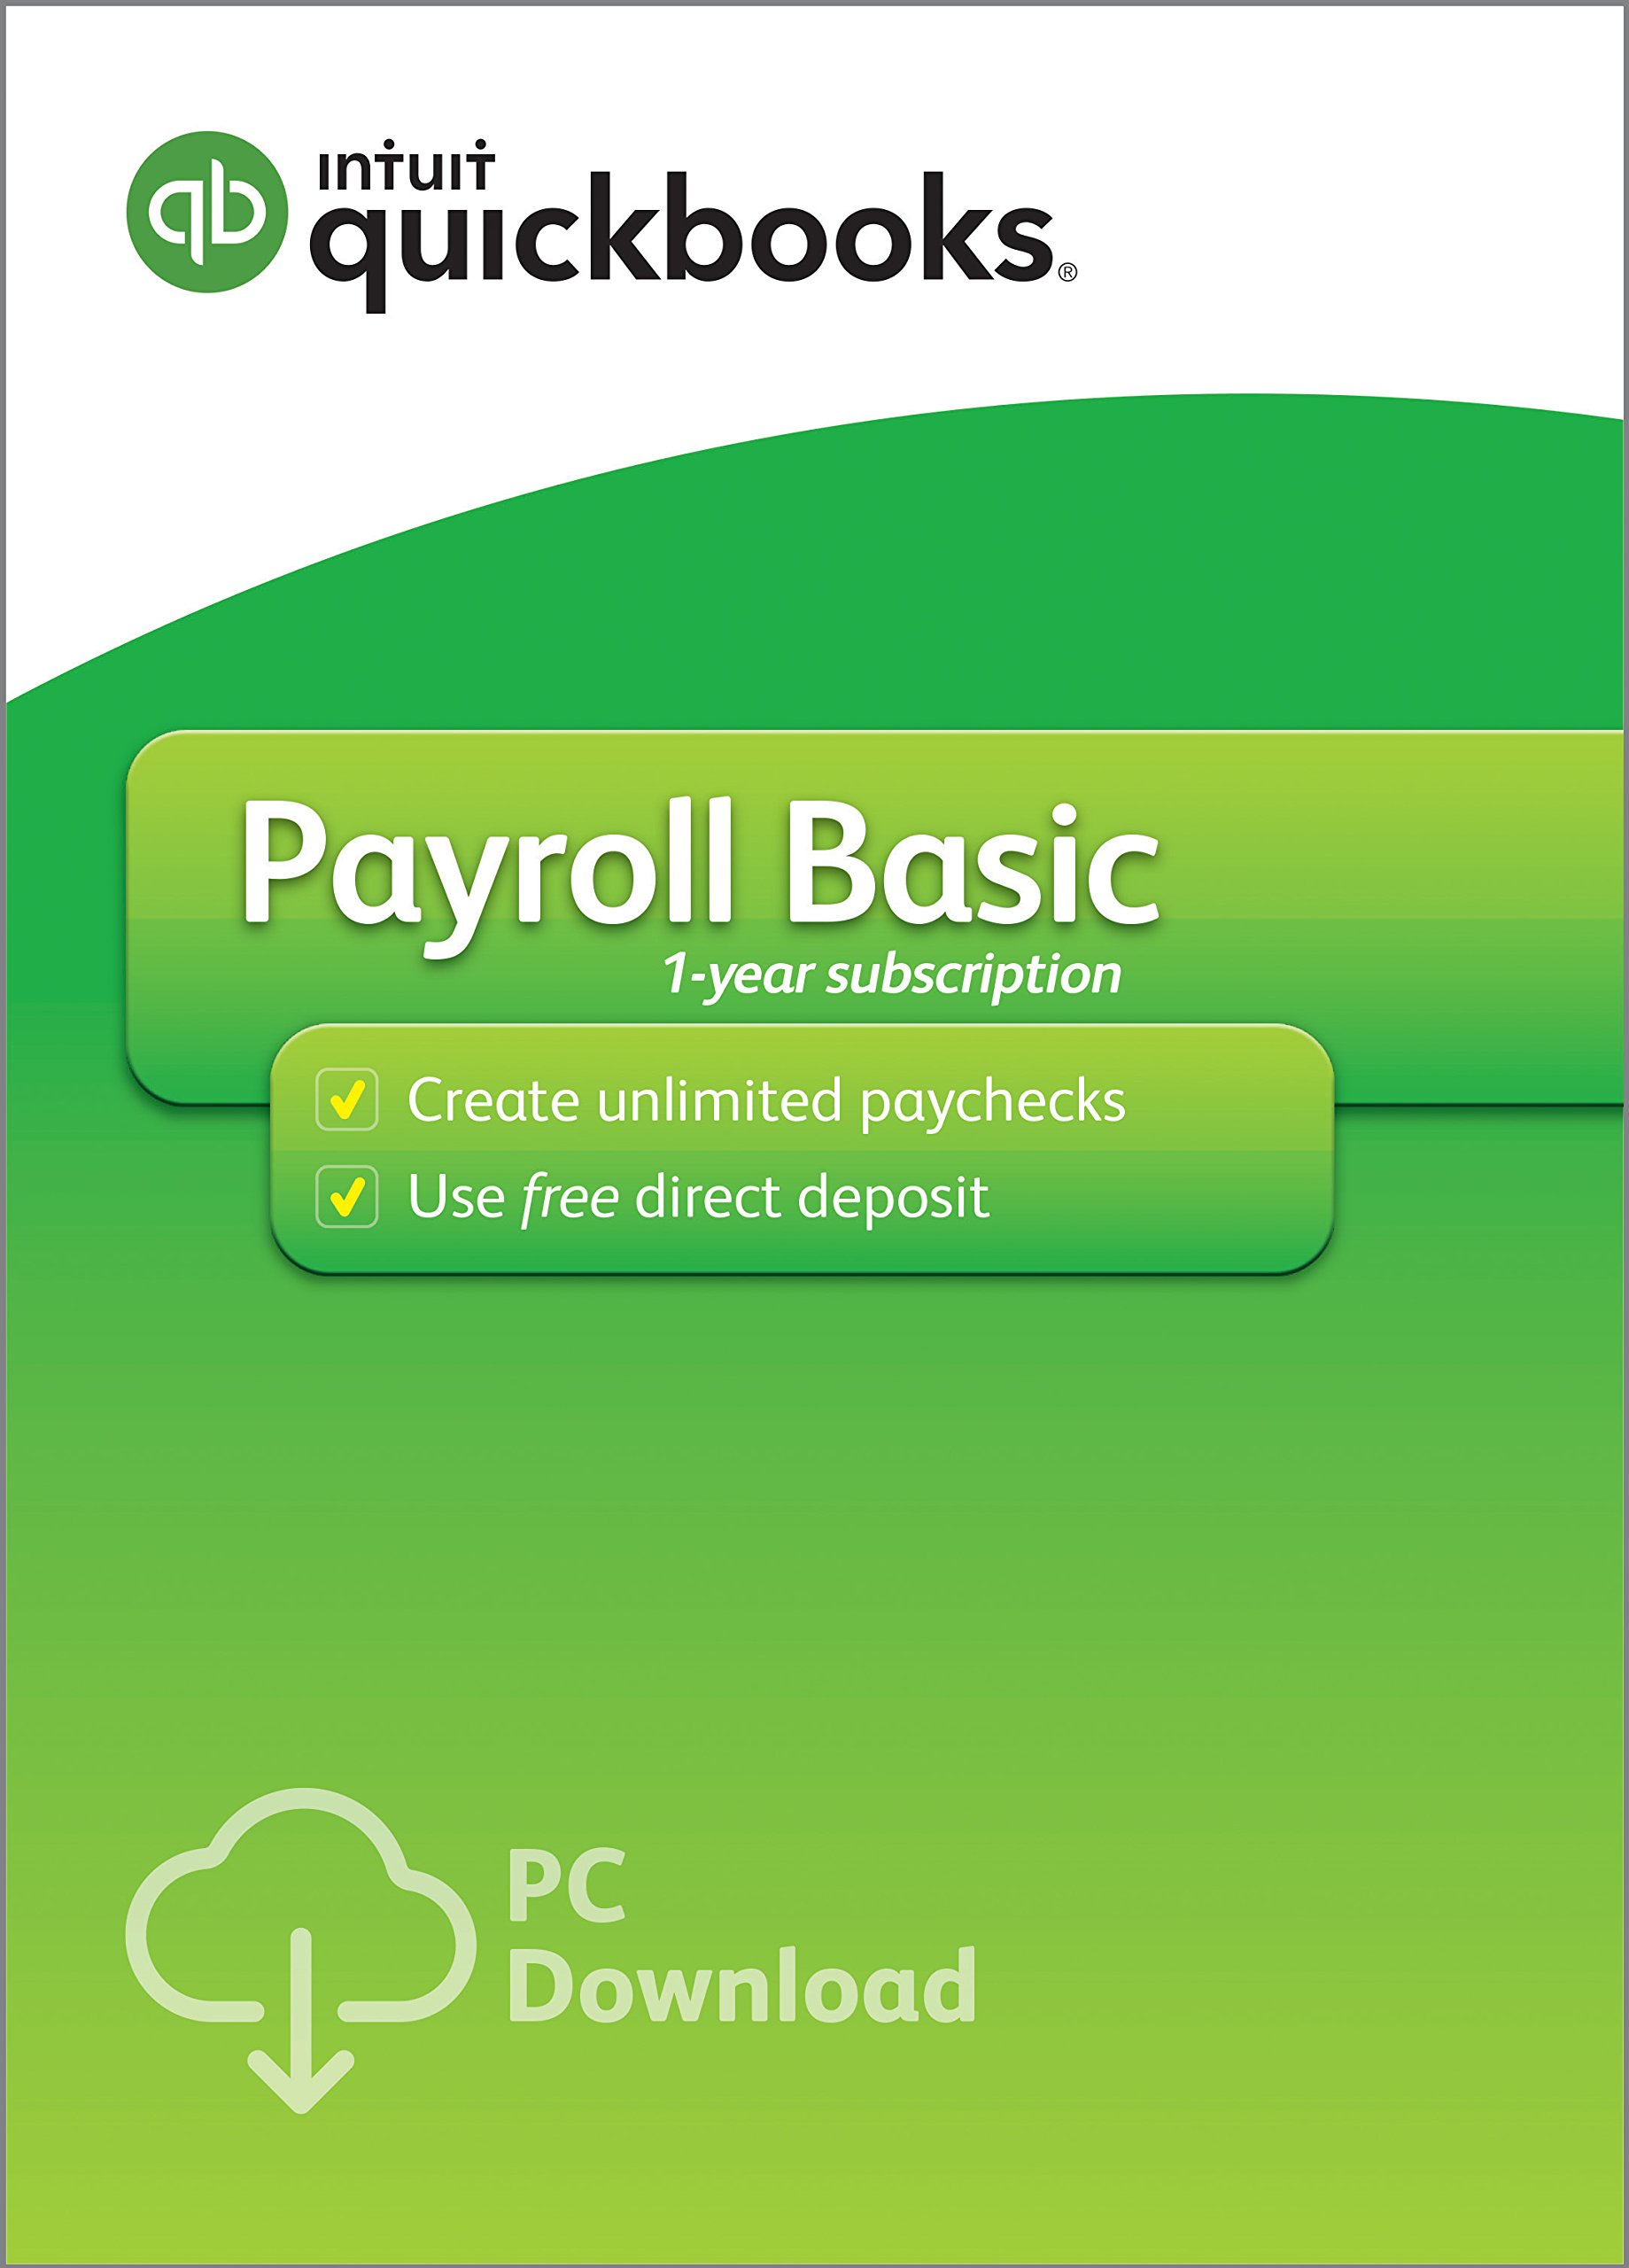 QuickBooks Desktop Basic Payroll 2019, 1 Year Subscription [PC Download] by Intuit